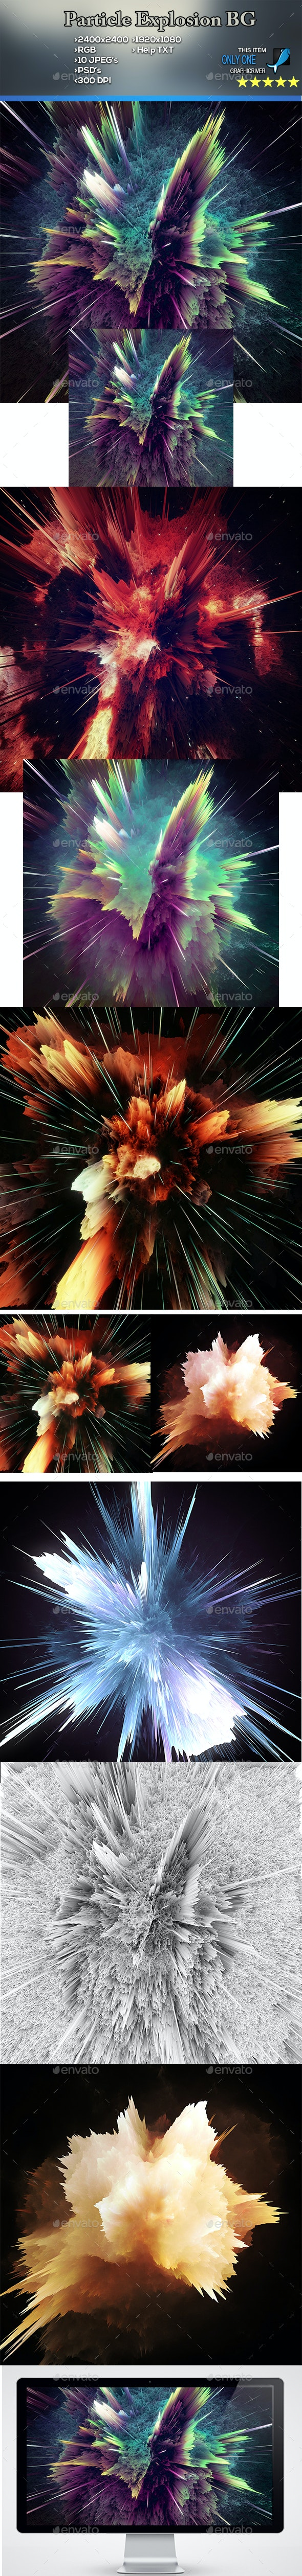 Nebula Explosion - Abstract Backgrounds